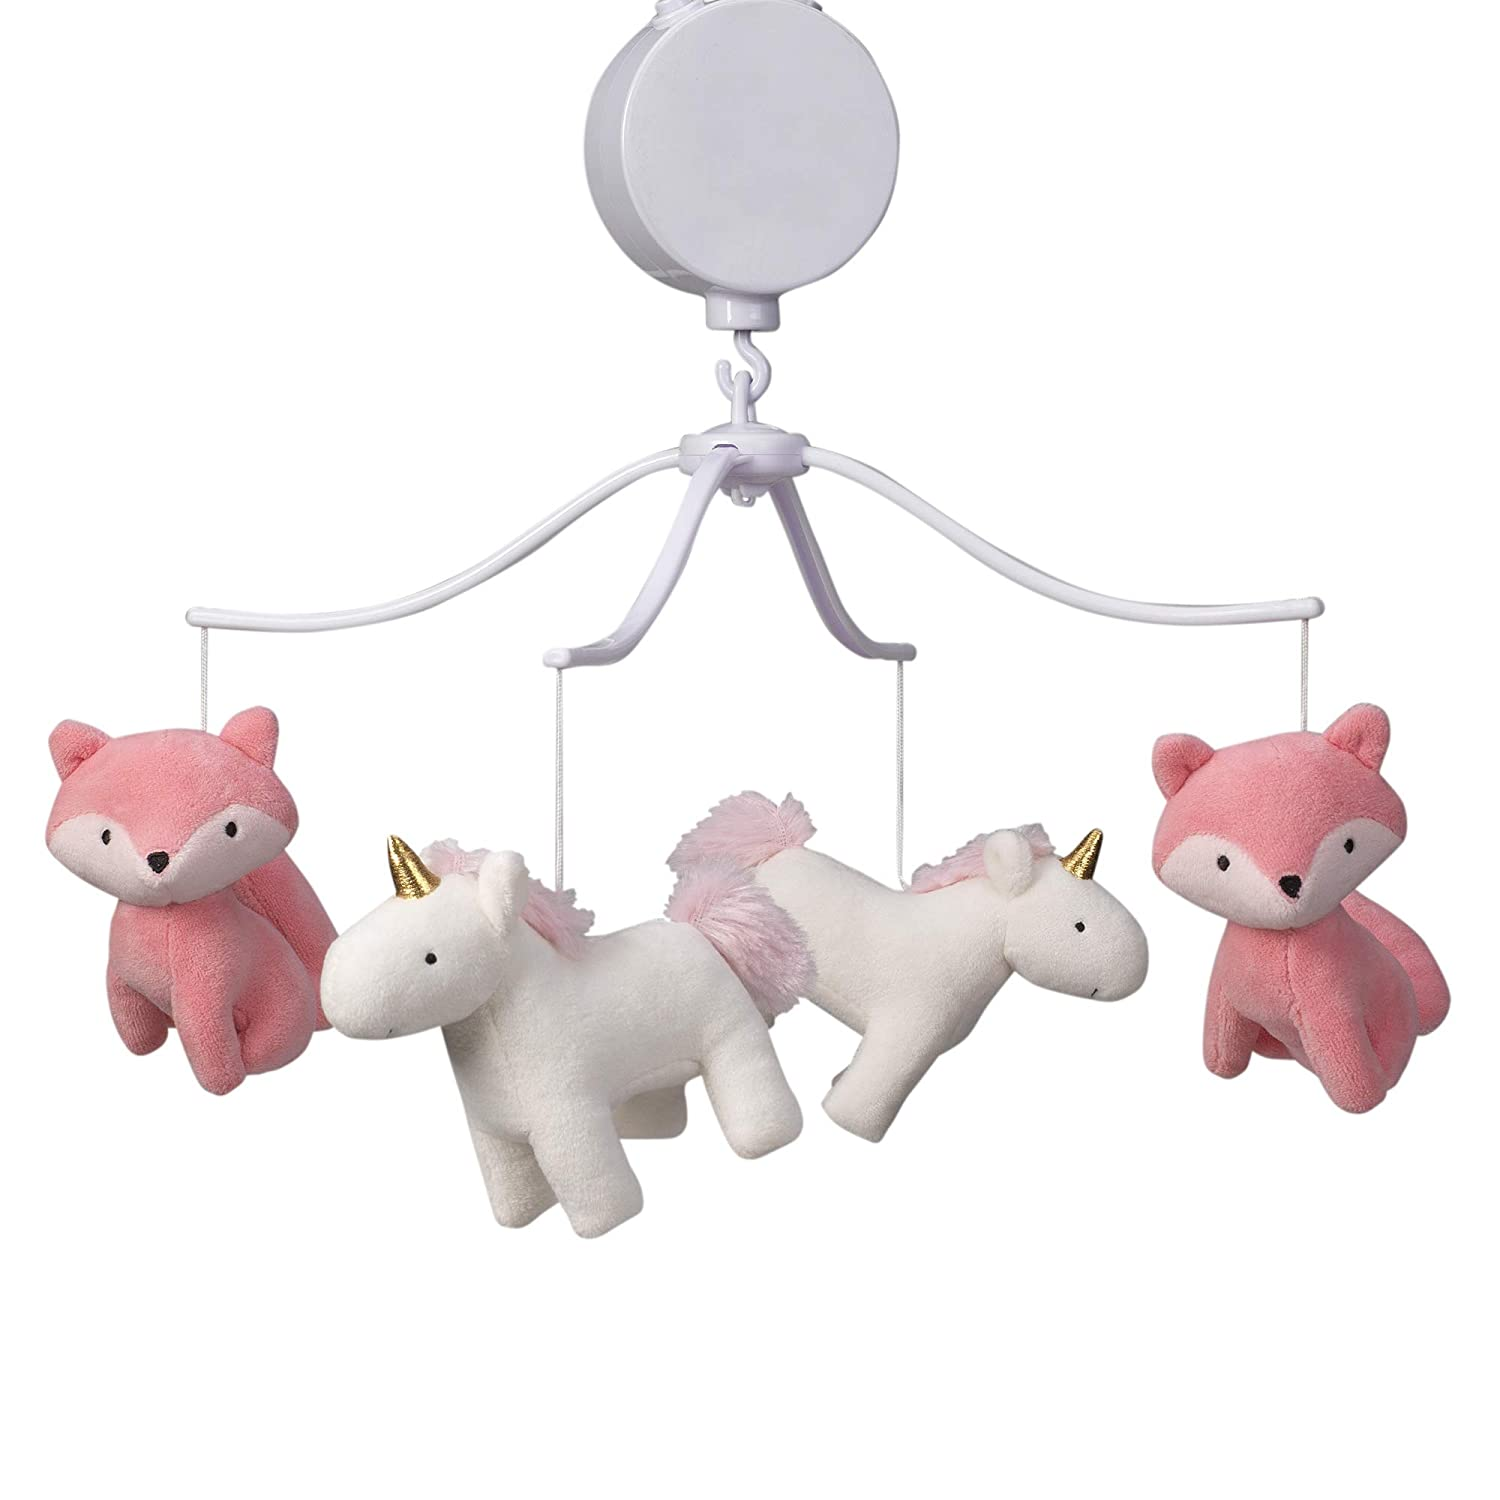 Bedtime Originals Rainbow OFFicial 5% OFF shop Unicorn Musical Crib Mobile Baby Pink